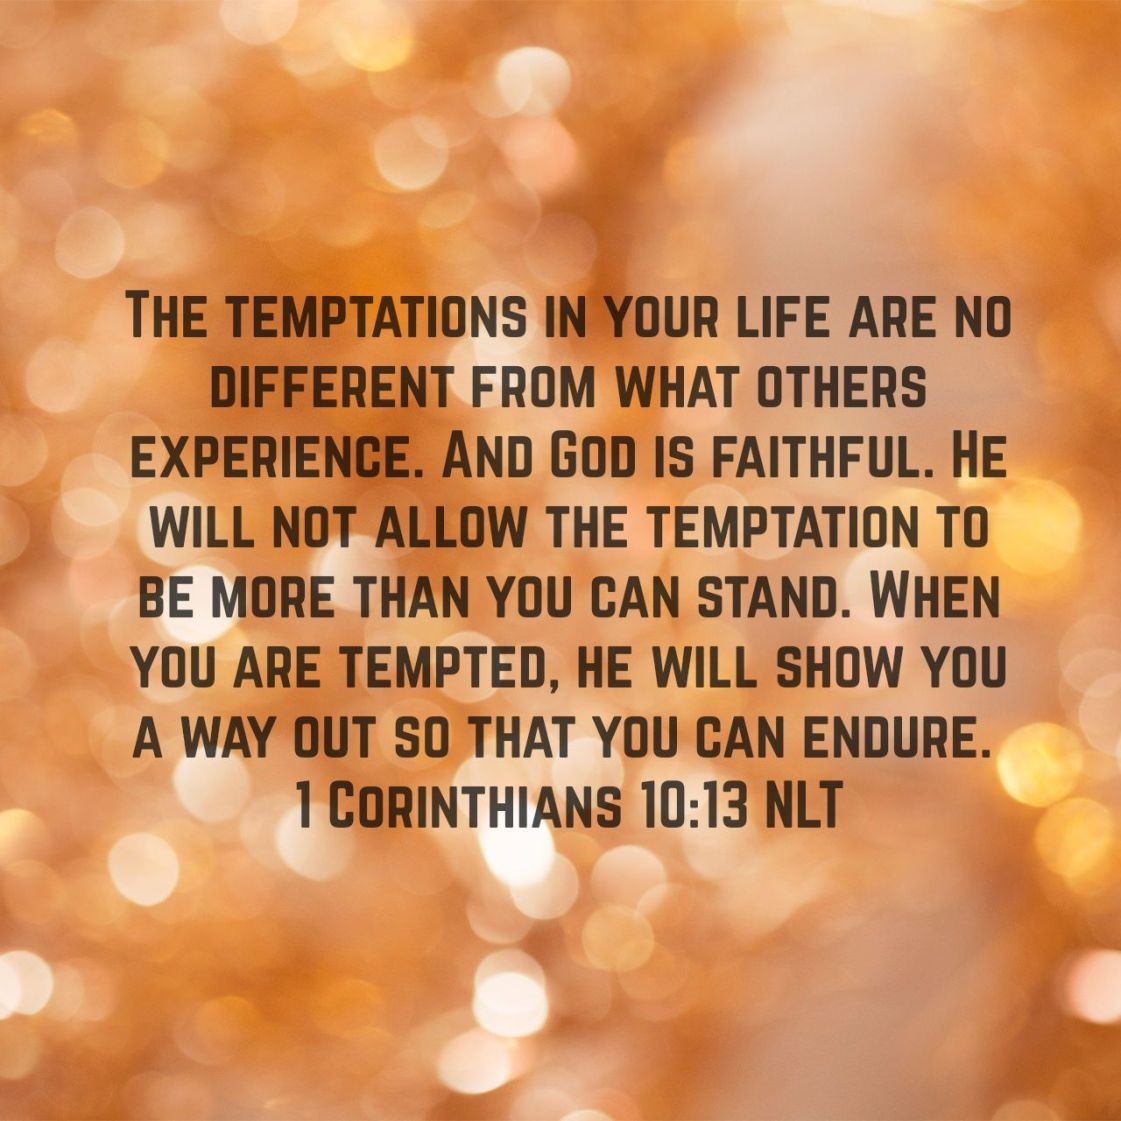 The temptations in your life are no different from what others experience. And God is faithful. He will not allow the temptation to be more than you can stand. When you are tempted, he will show you a way out so that you can endure. - 1 Corinthians 10:13 NLT